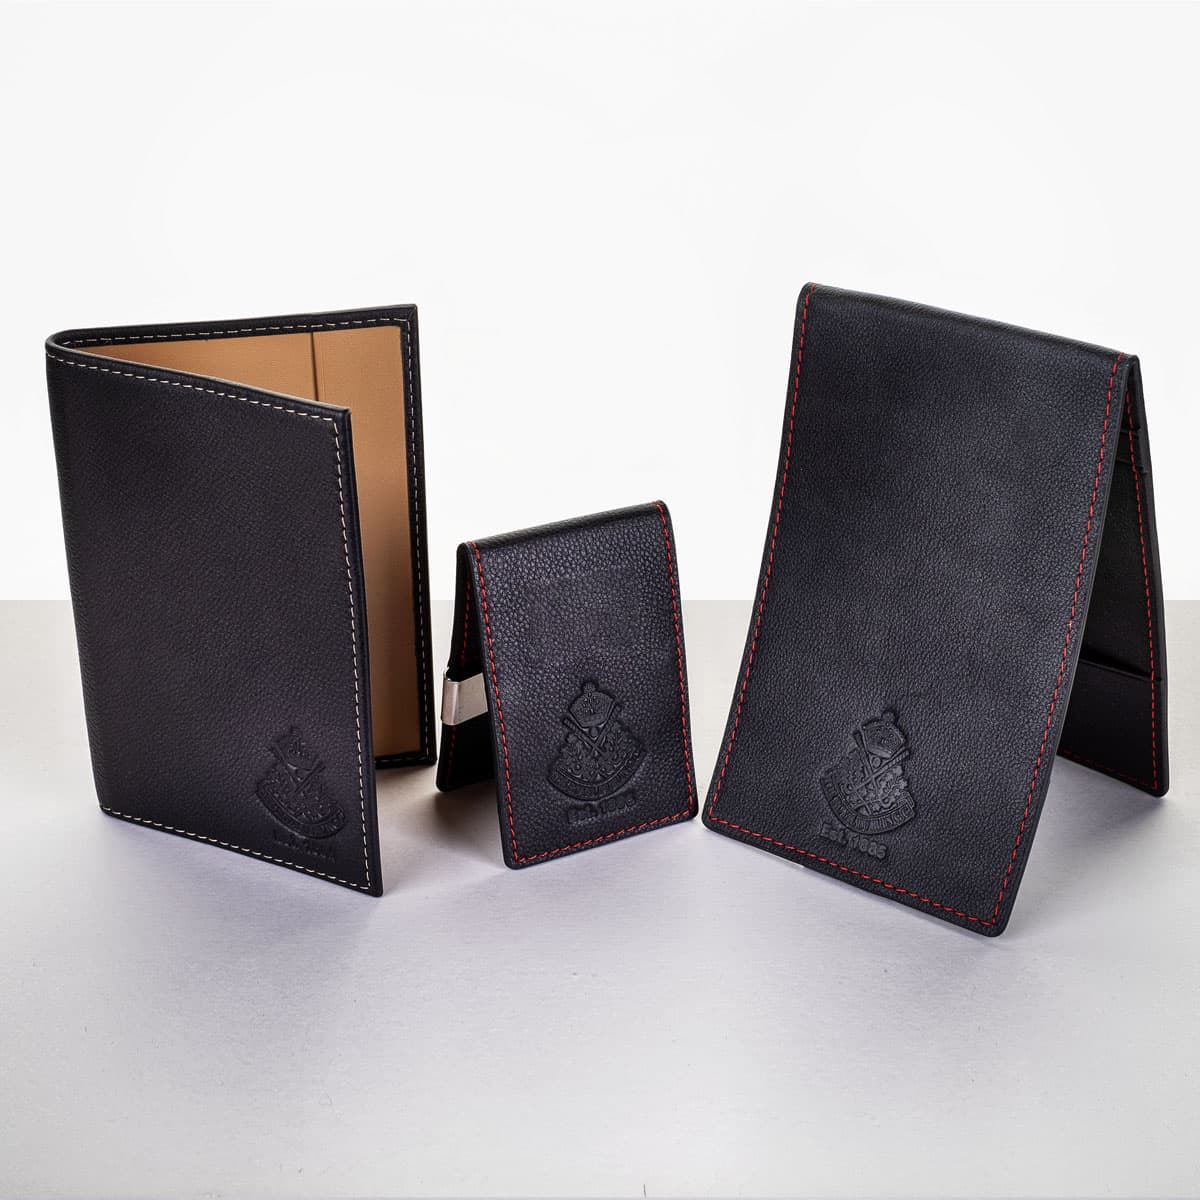 Leather scorecard holder, yardage book holder and wallet - €59.95 each